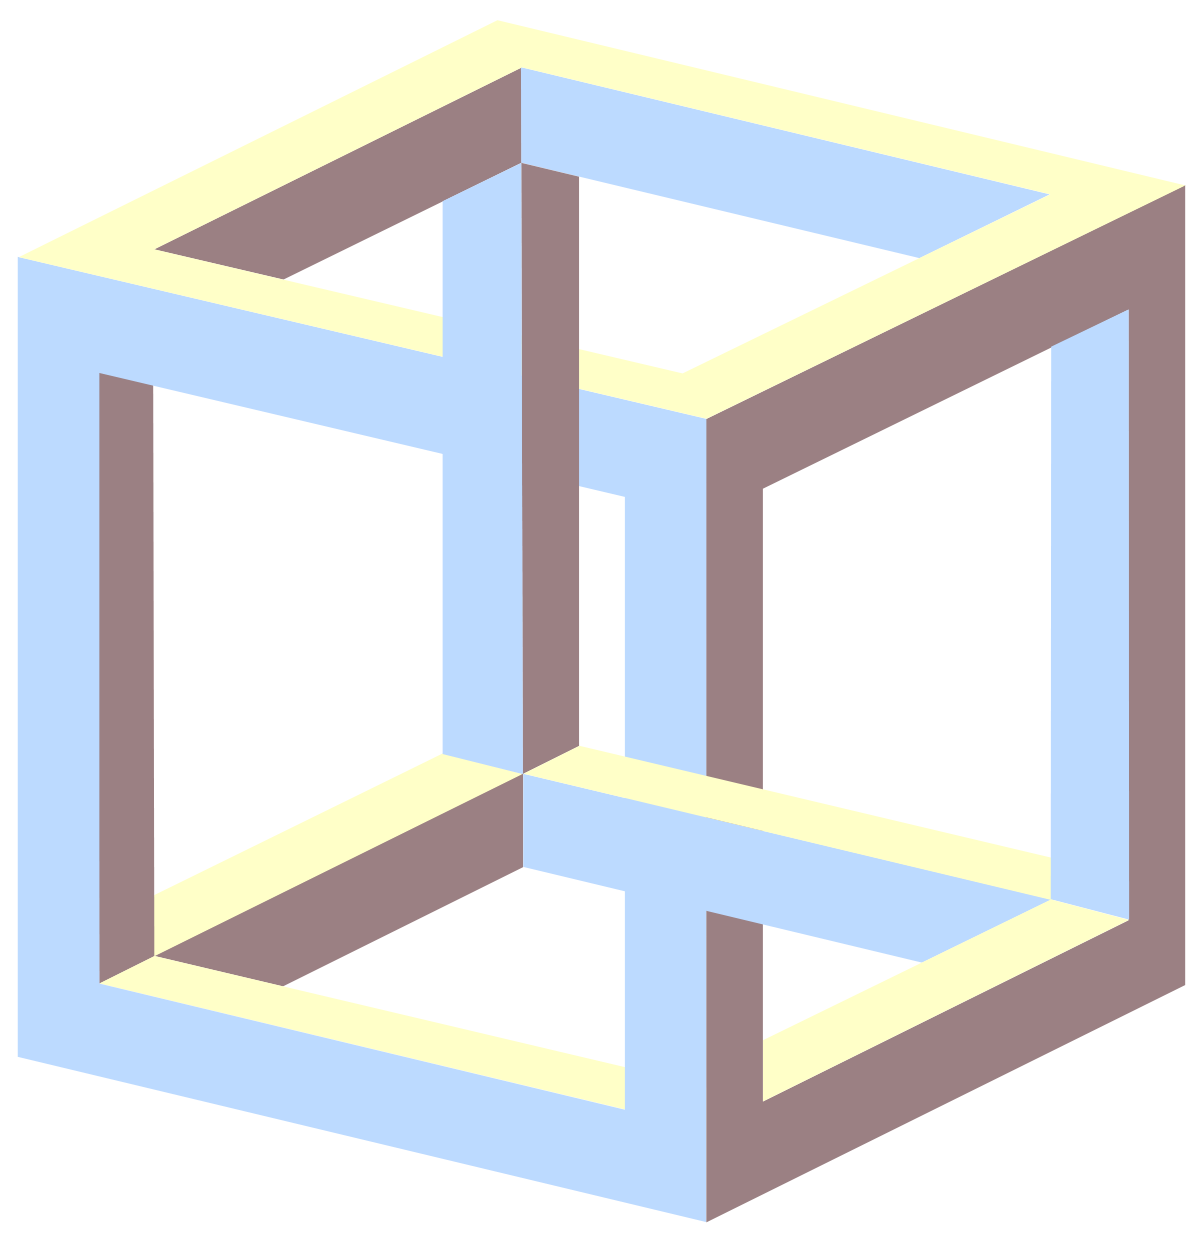 Mathematical drawing optical illusion. Impossible cube wikipedia